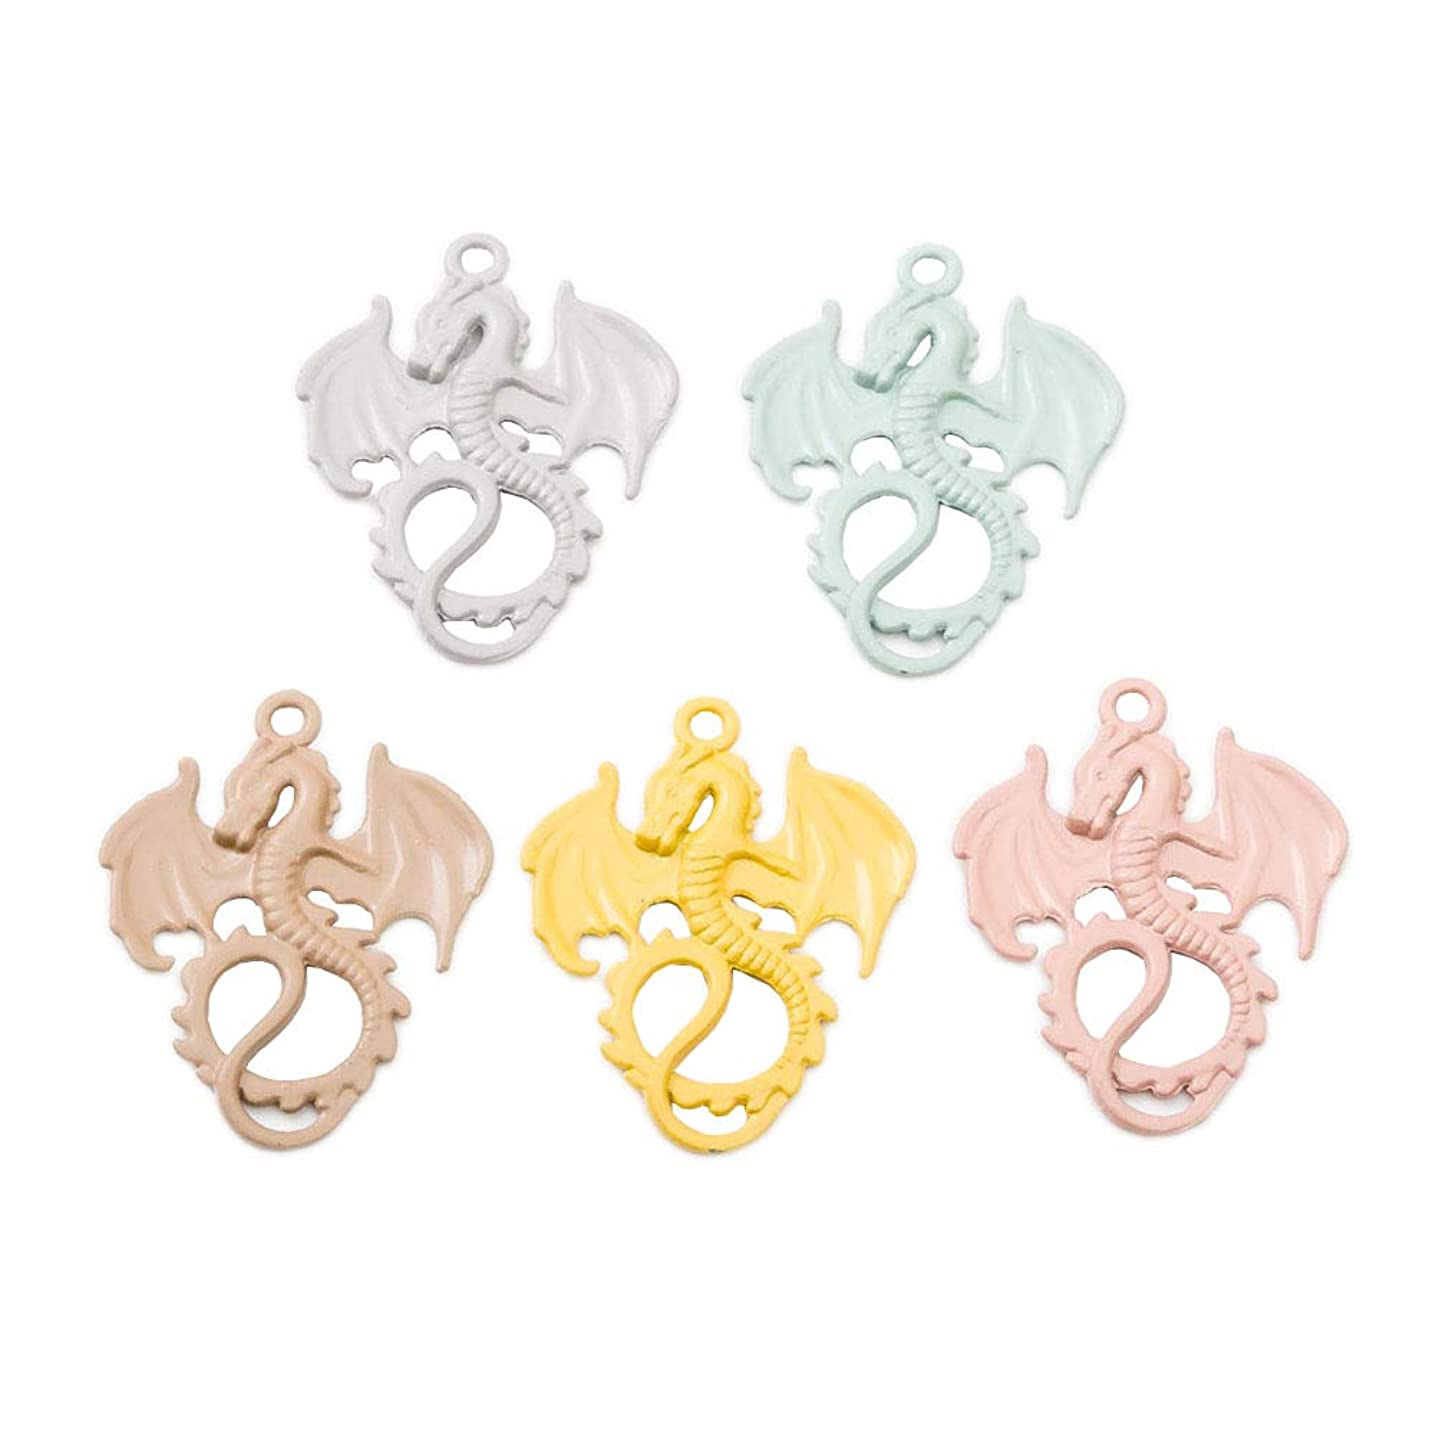 20pcs Mixed Color Vintage Alloy Animal Dragon Charms Pendant Jewelry Findings for Jewelry Making Necklace Bracelet DIY 35x28mm (20pcs Dragon)